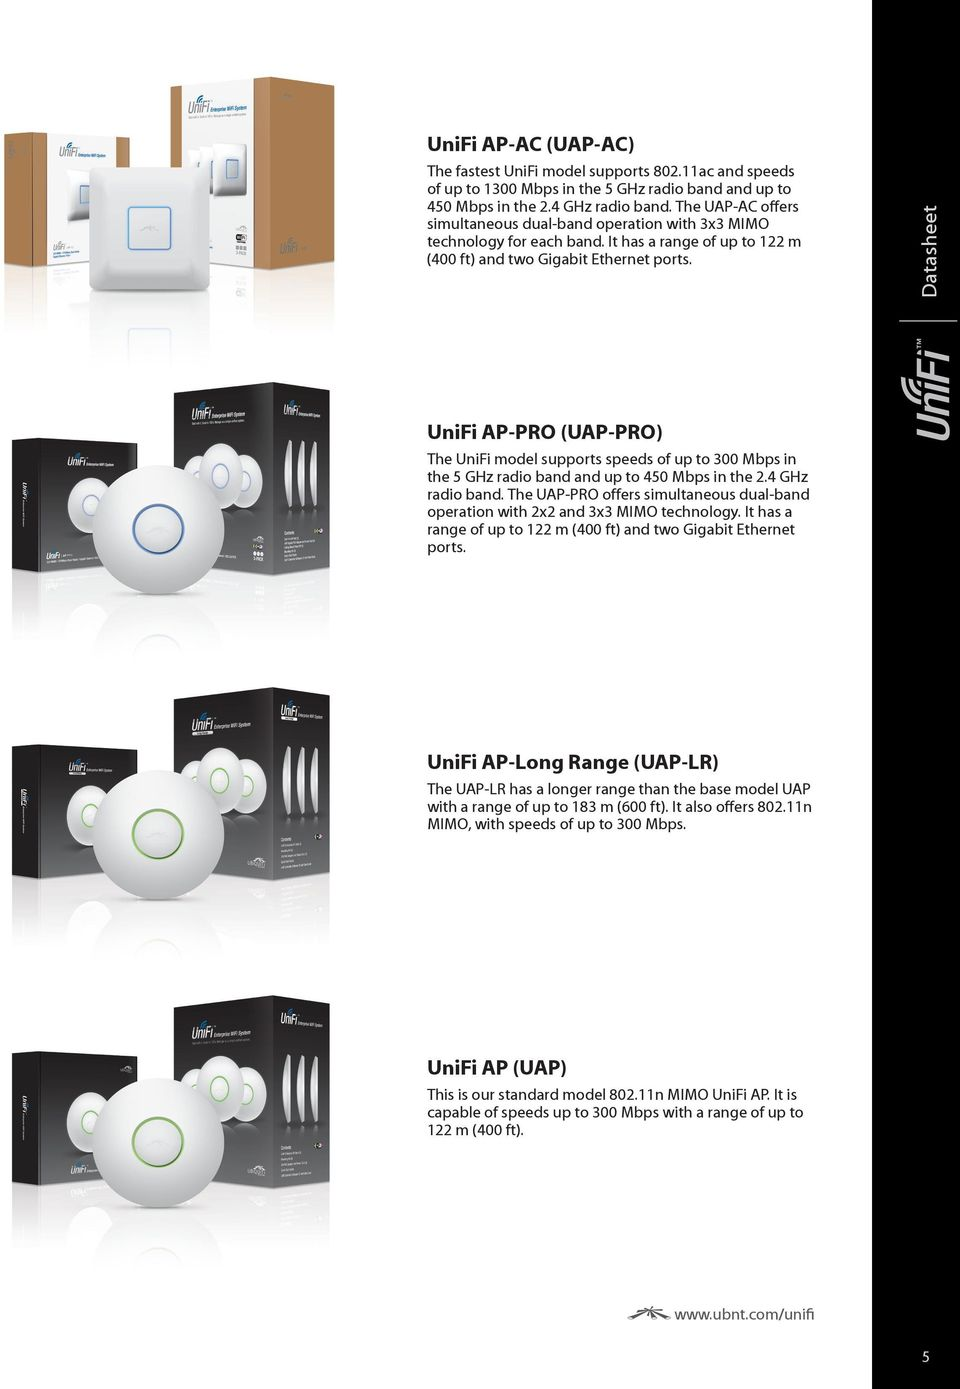 Harga Unifi Ap Long Range Uap Lr Terbaru 2018 Ac Enterprise Wifi System Datasheet Models Pro The Model Supports Speeds